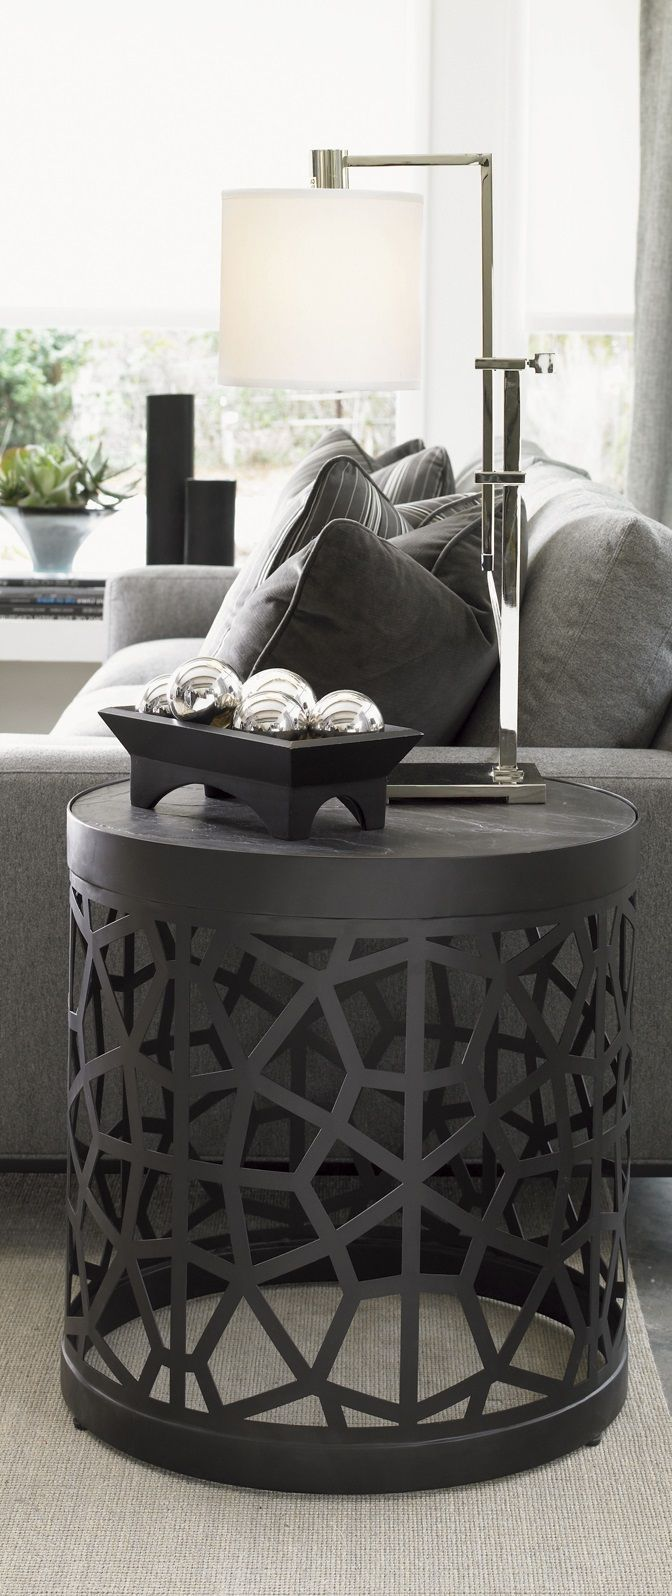 Side tables accent tables end tables interiordesign casegoodsideas moder home decor